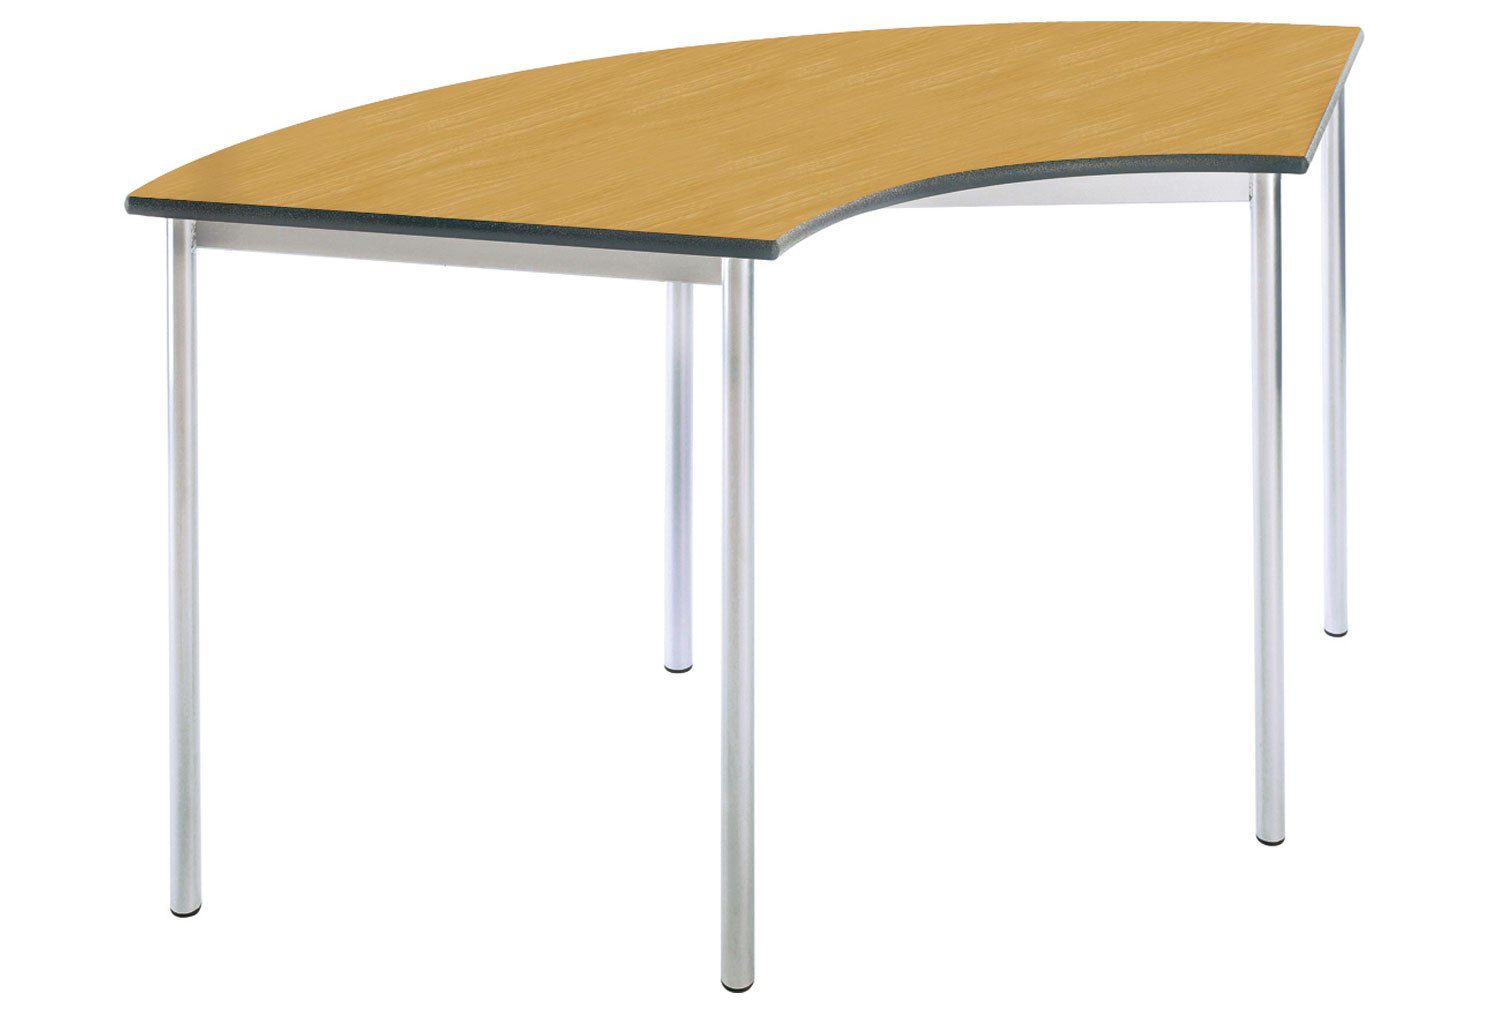 RT32 Arc Shaped Classroom Tables 3-4 Years